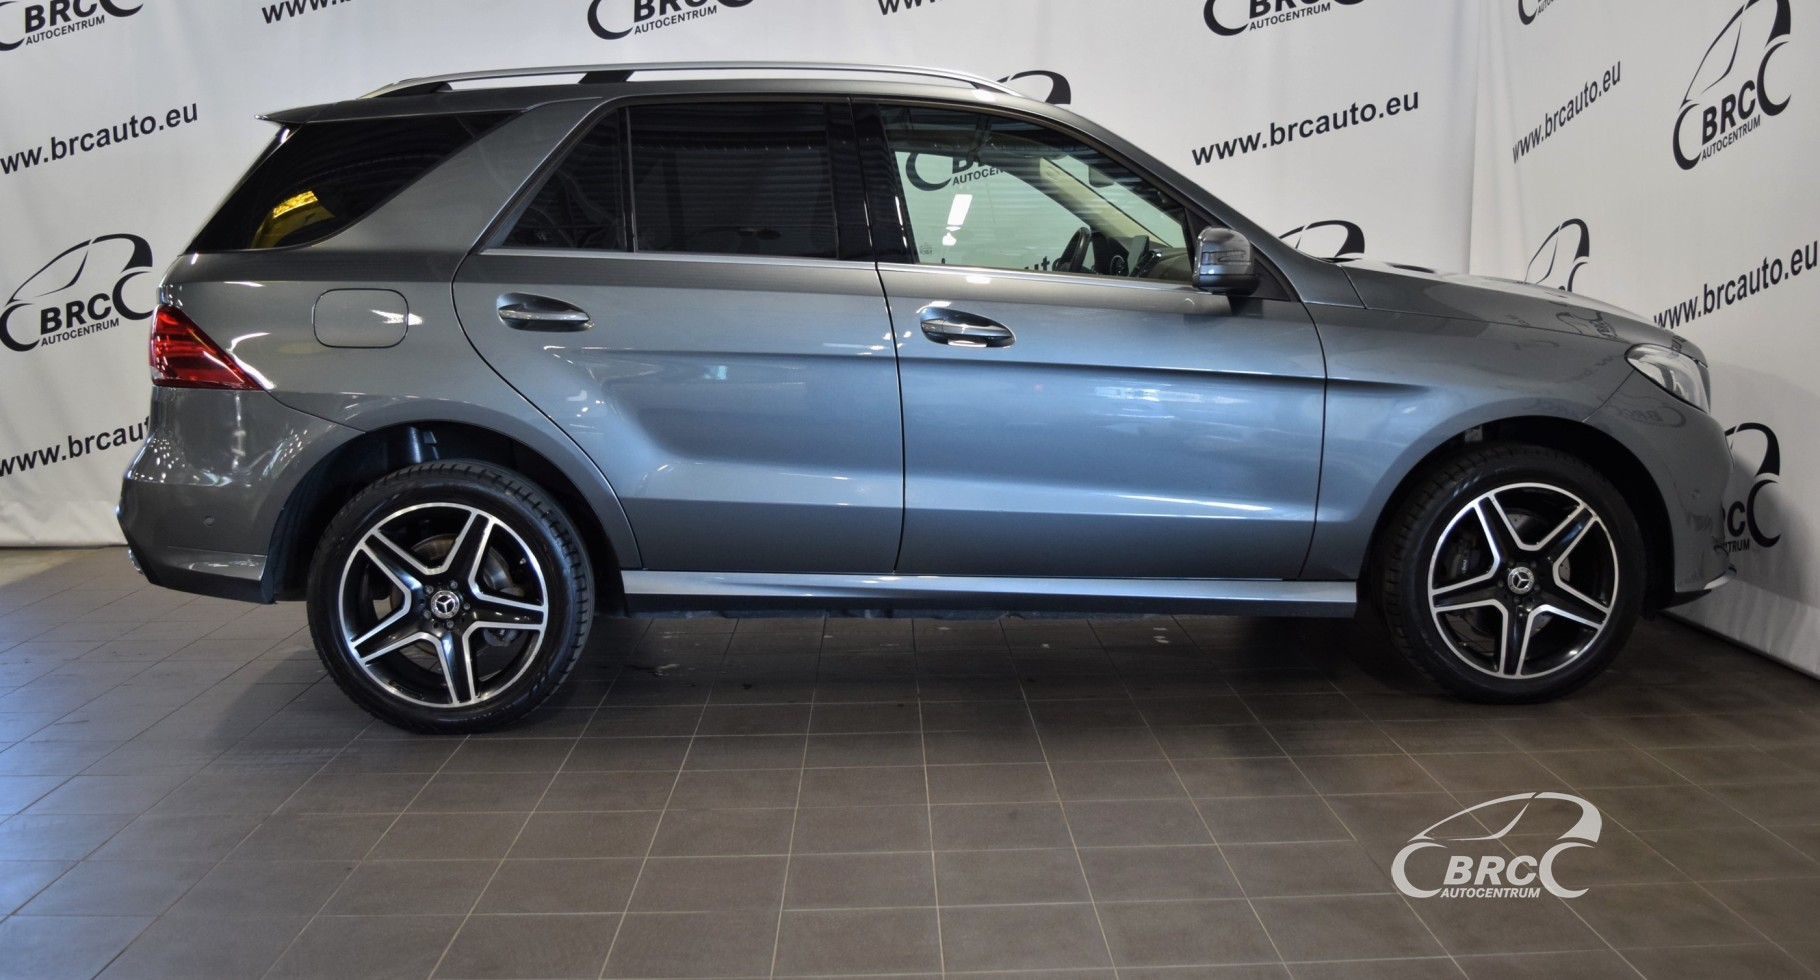 Mercedes-Benz GLE 350 d 4Matic AMG Design V6 BlueTec